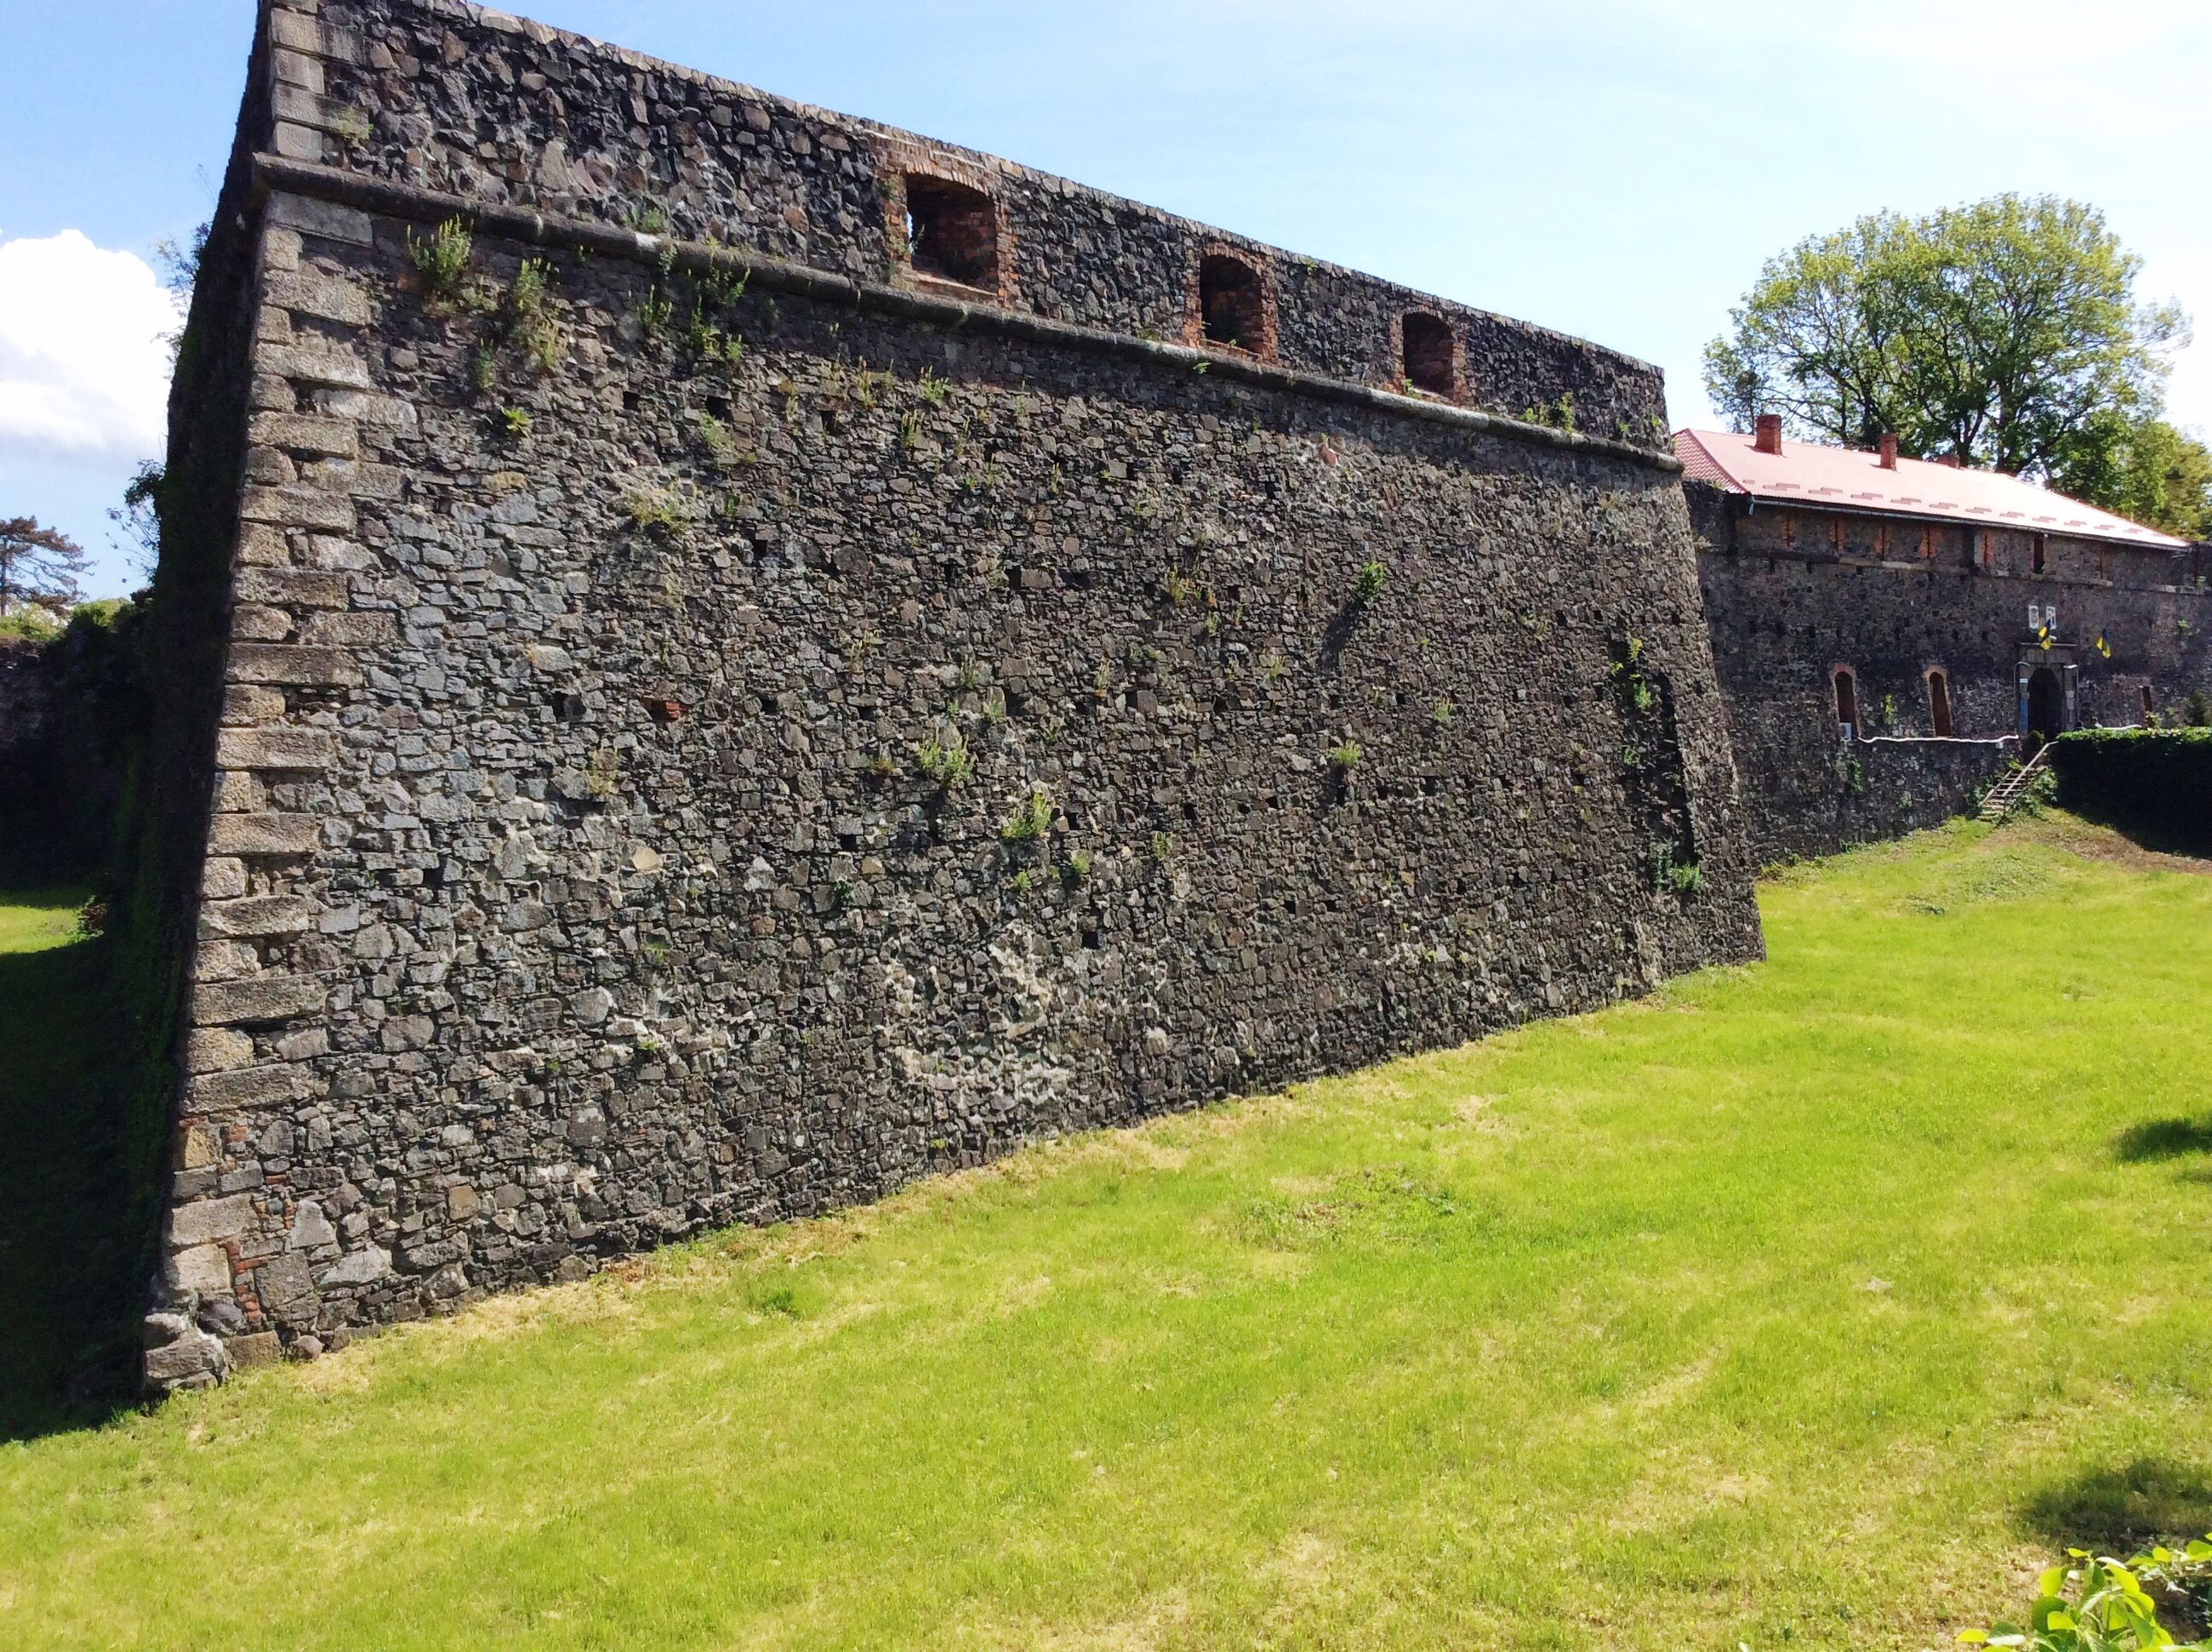 grass, architecture, built structure, wall - building feature, building exterior, sky, day, lawn, the past, growth, surrounding wall, green color, outdoors, history, yard, weathered, stone material, no people, grassy, fortified wall, footpath, fort